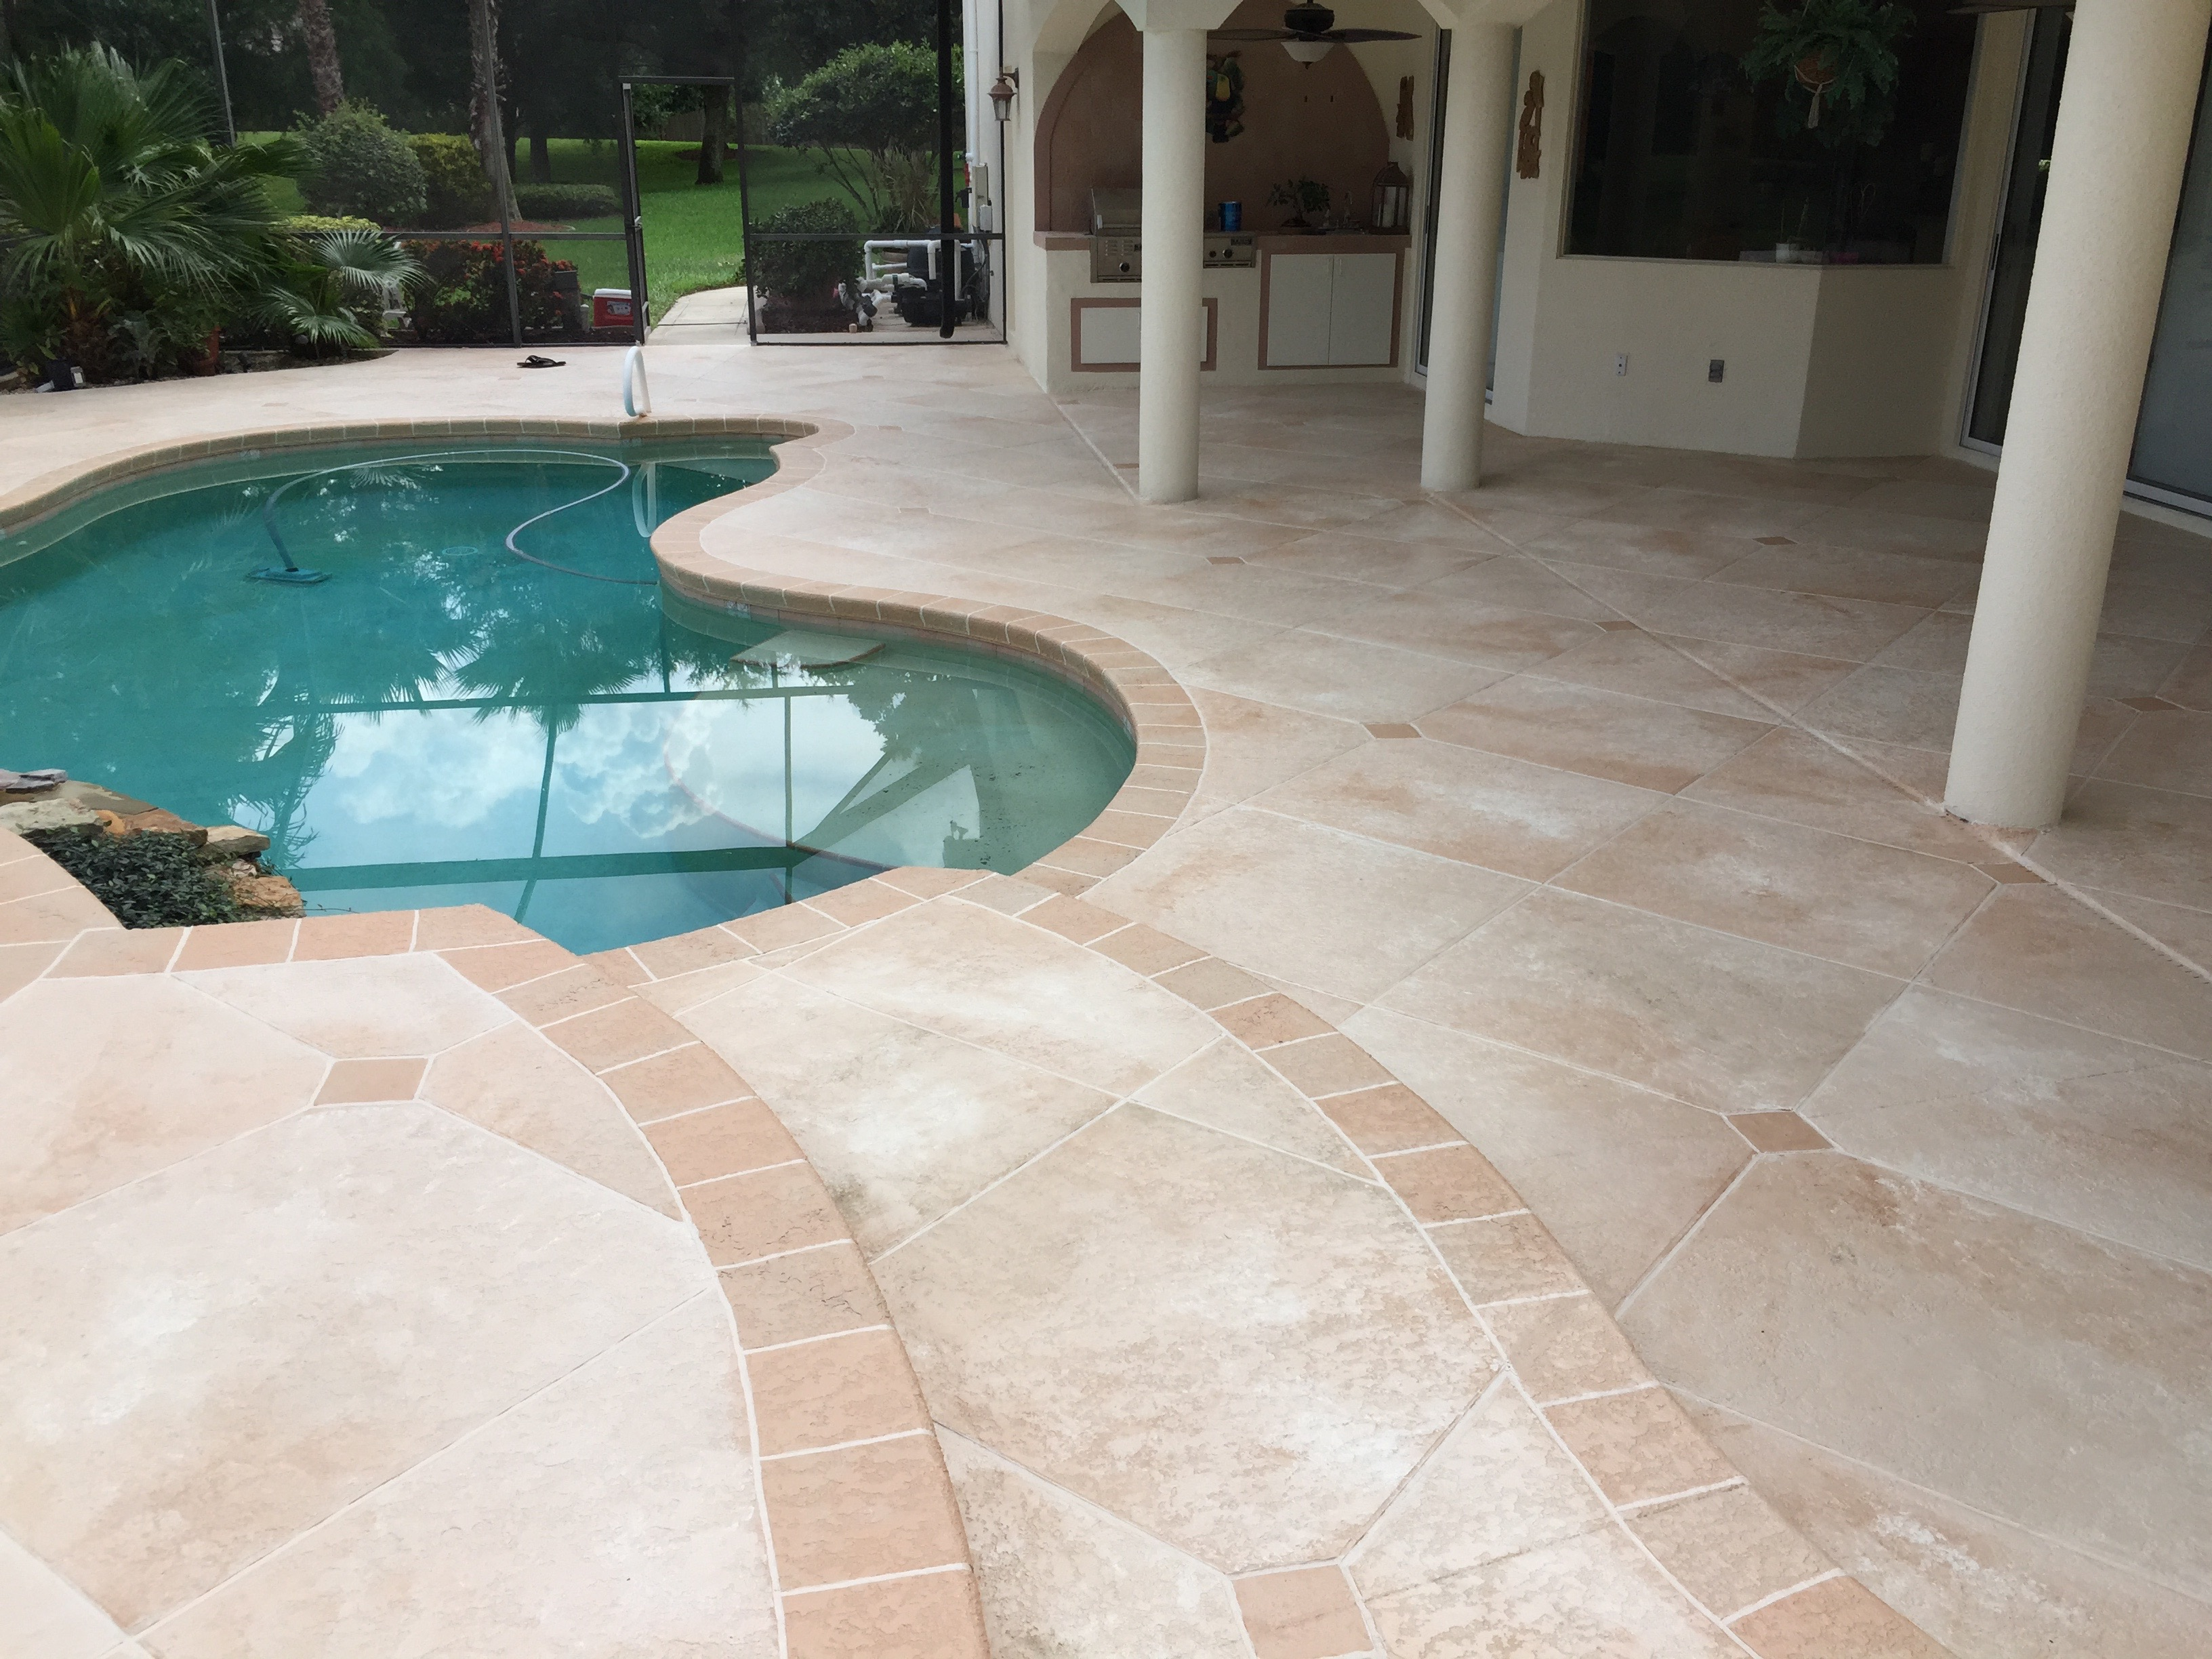 Travertine Pool Deck Concrete Designs Florida  Travertine Pool Deck Florida